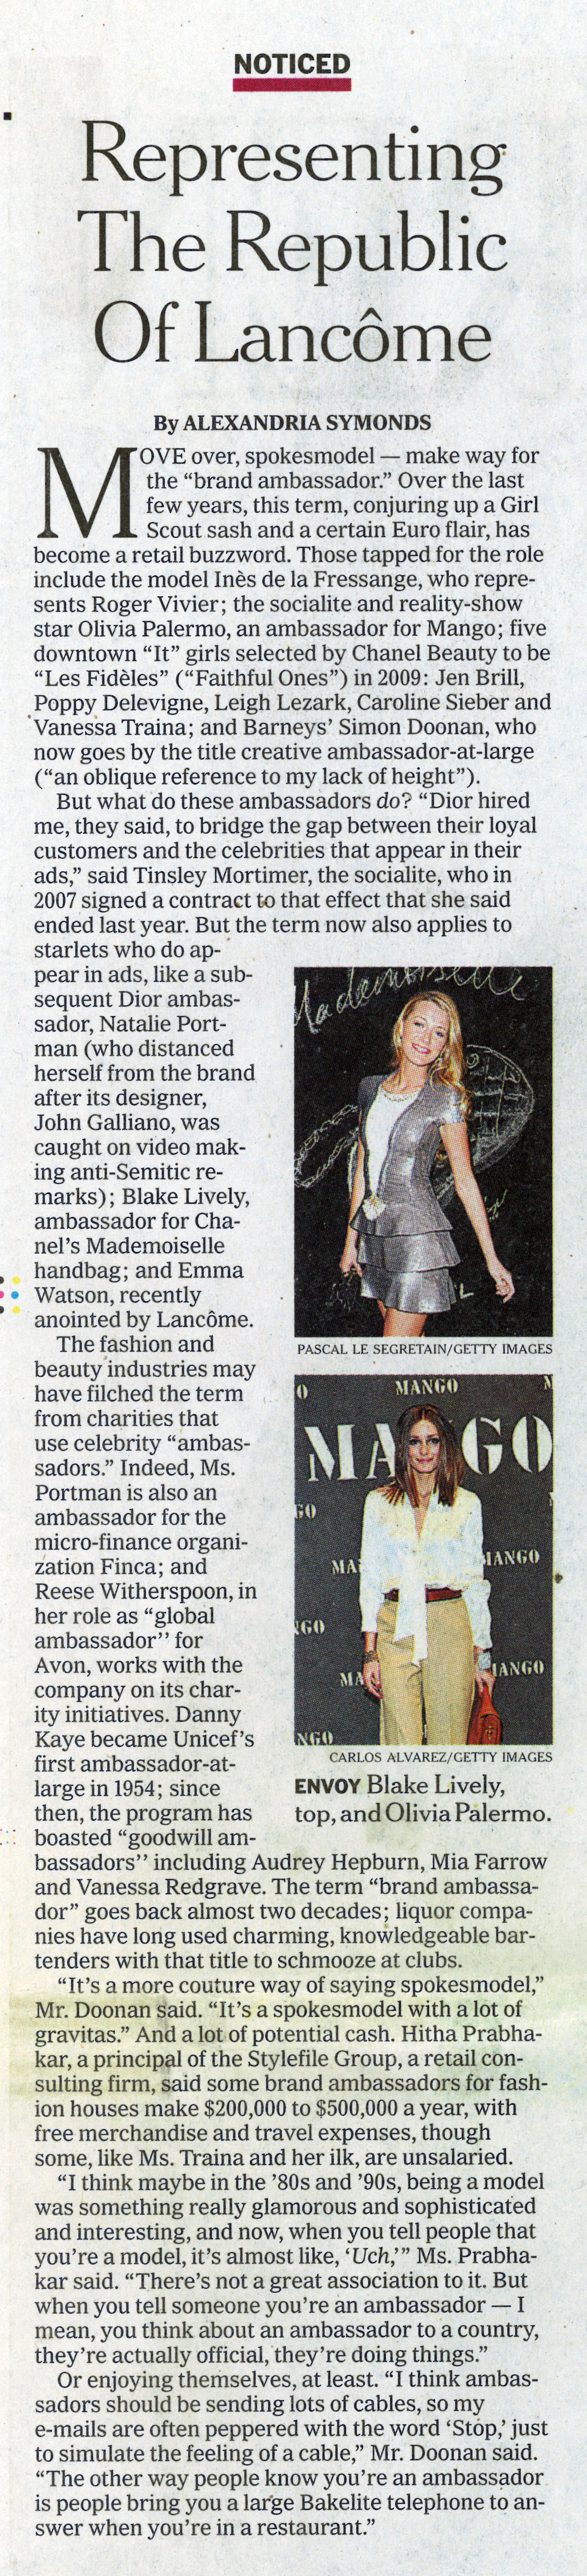 """Snippet from the New York Times, discussing model ambassadors. Copy of Hitha Herzog's comments reads: Hitha Prabhakar, a principal of the Stylefile Group, a retail consulting firm, said some brand ambassadors for fashion houses make $200,000 to $500,000 a year, with free merchandise and travel expenses, though some, like Ms. Traina and her ilk, are unsalaried. """"I think maybe in the '80s and '90s,being a model was really glamorous and sophisticated and interesting and now when you tell people you are a model, it's almost like 'uch.' Ms. Prabhakar said. There is no great association to it. But when you tell someone you are an ambassador, I mean, you think of an ambassador to a country, they're actually official, they're doing things."""""""